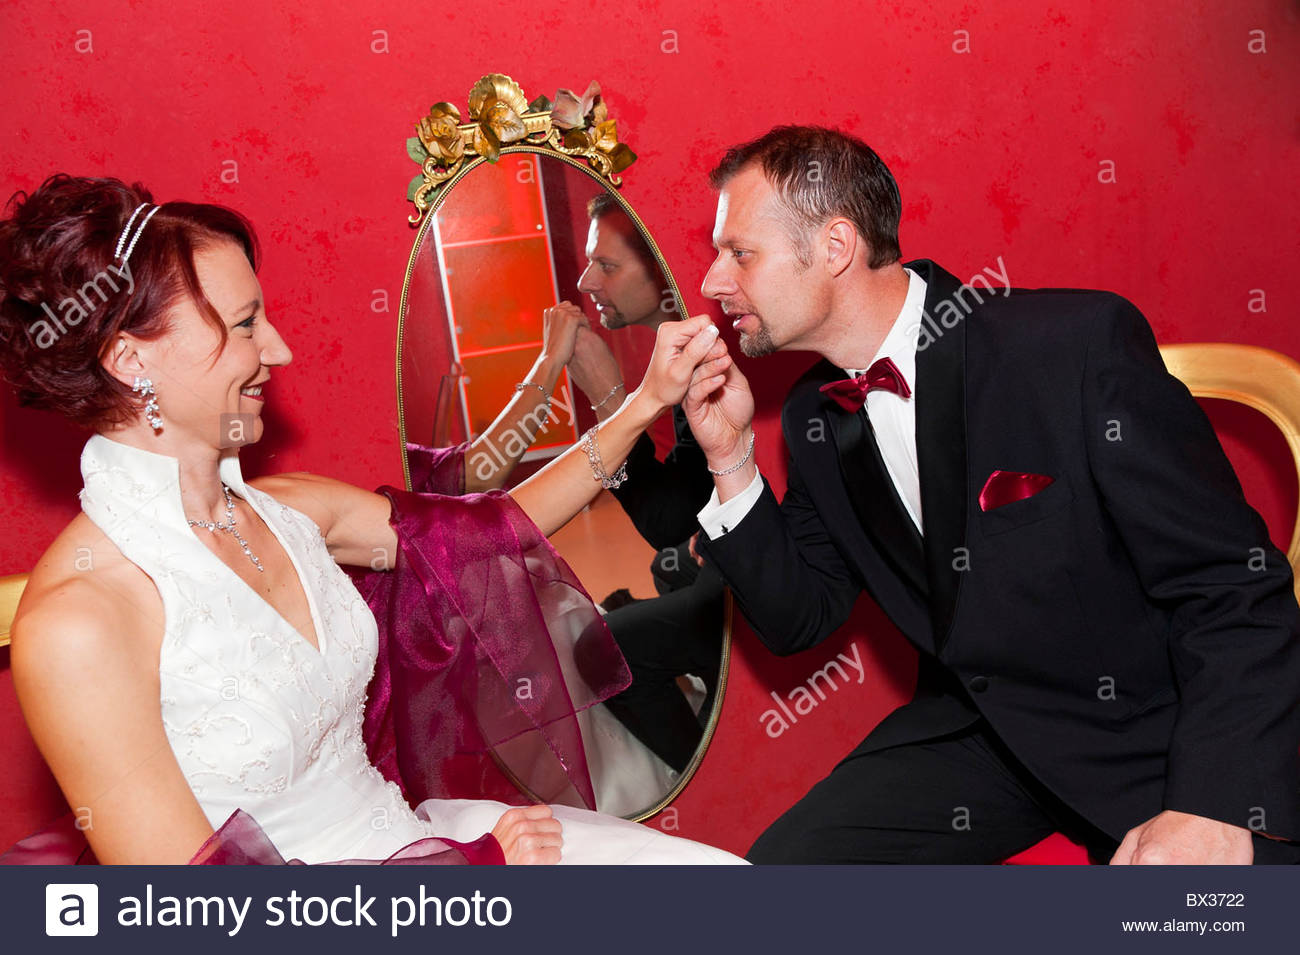 Groom gallantly kissing bride's hand - Stock Image